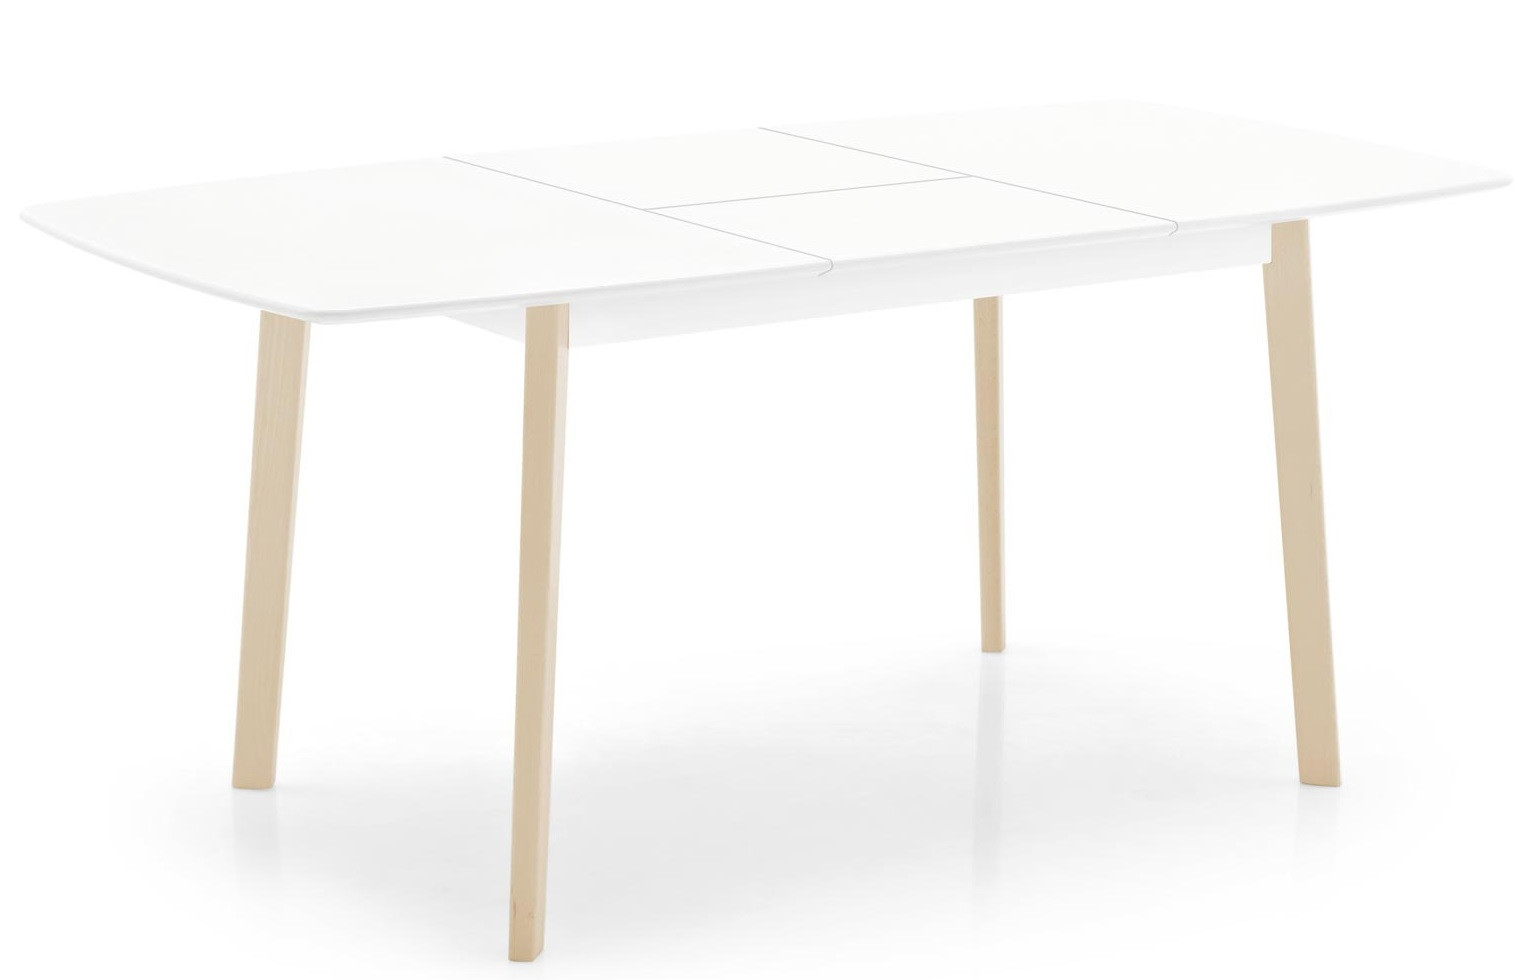 Tavolo cream calligaris calligaris mondini for Tavolo cream calligaris